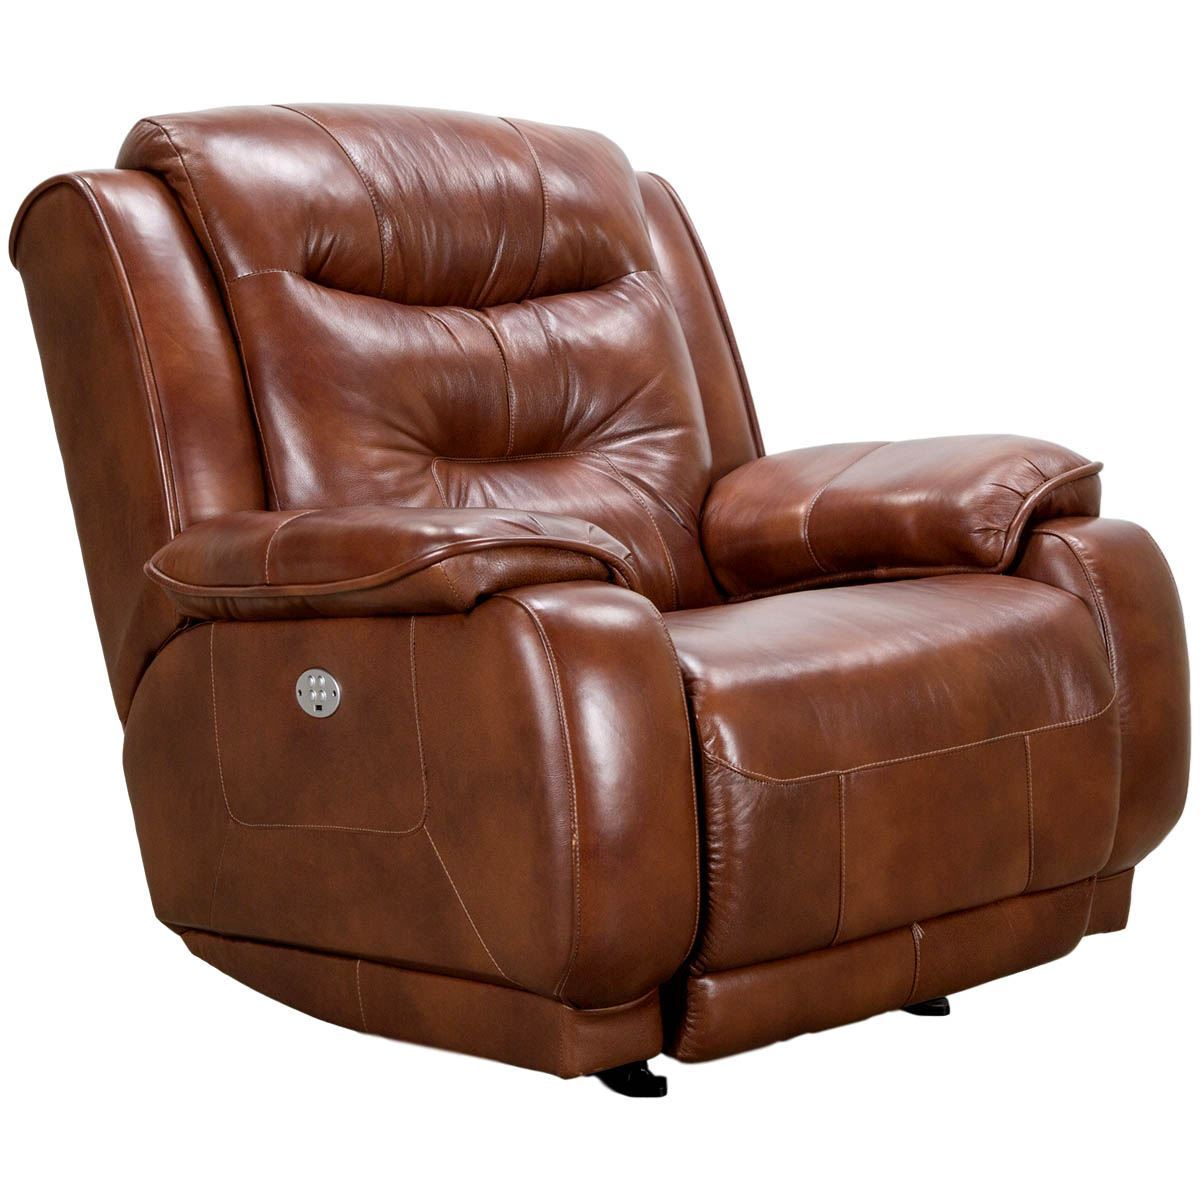 crescent power sofa recliner with headrest 3 seat bed slipcover leather rocker by